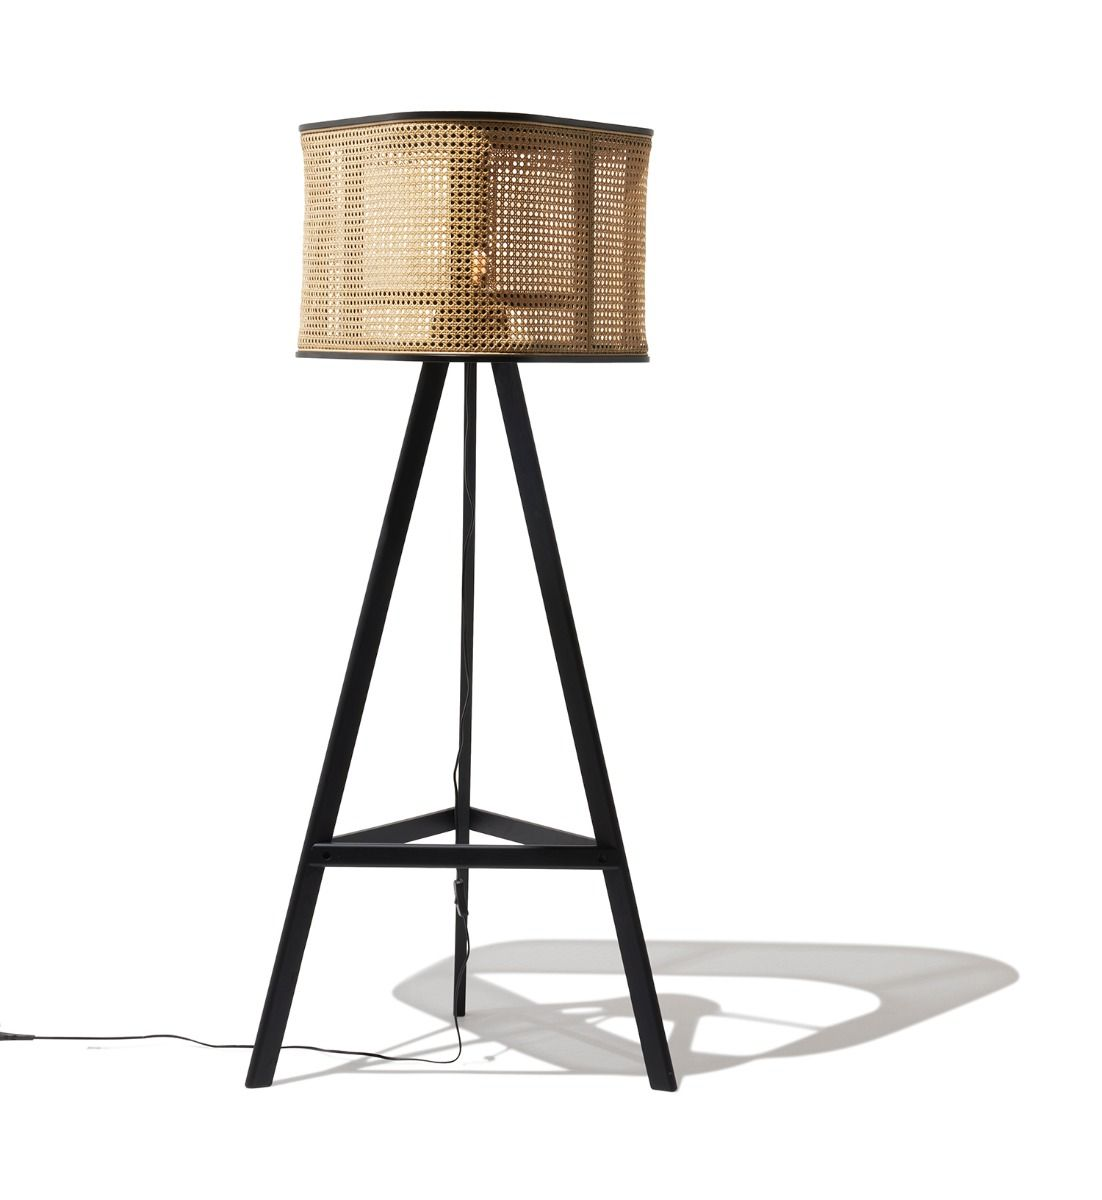 Cane Floor Lamp In 2020 Floor Lamp Lamp Black Floor Lamp